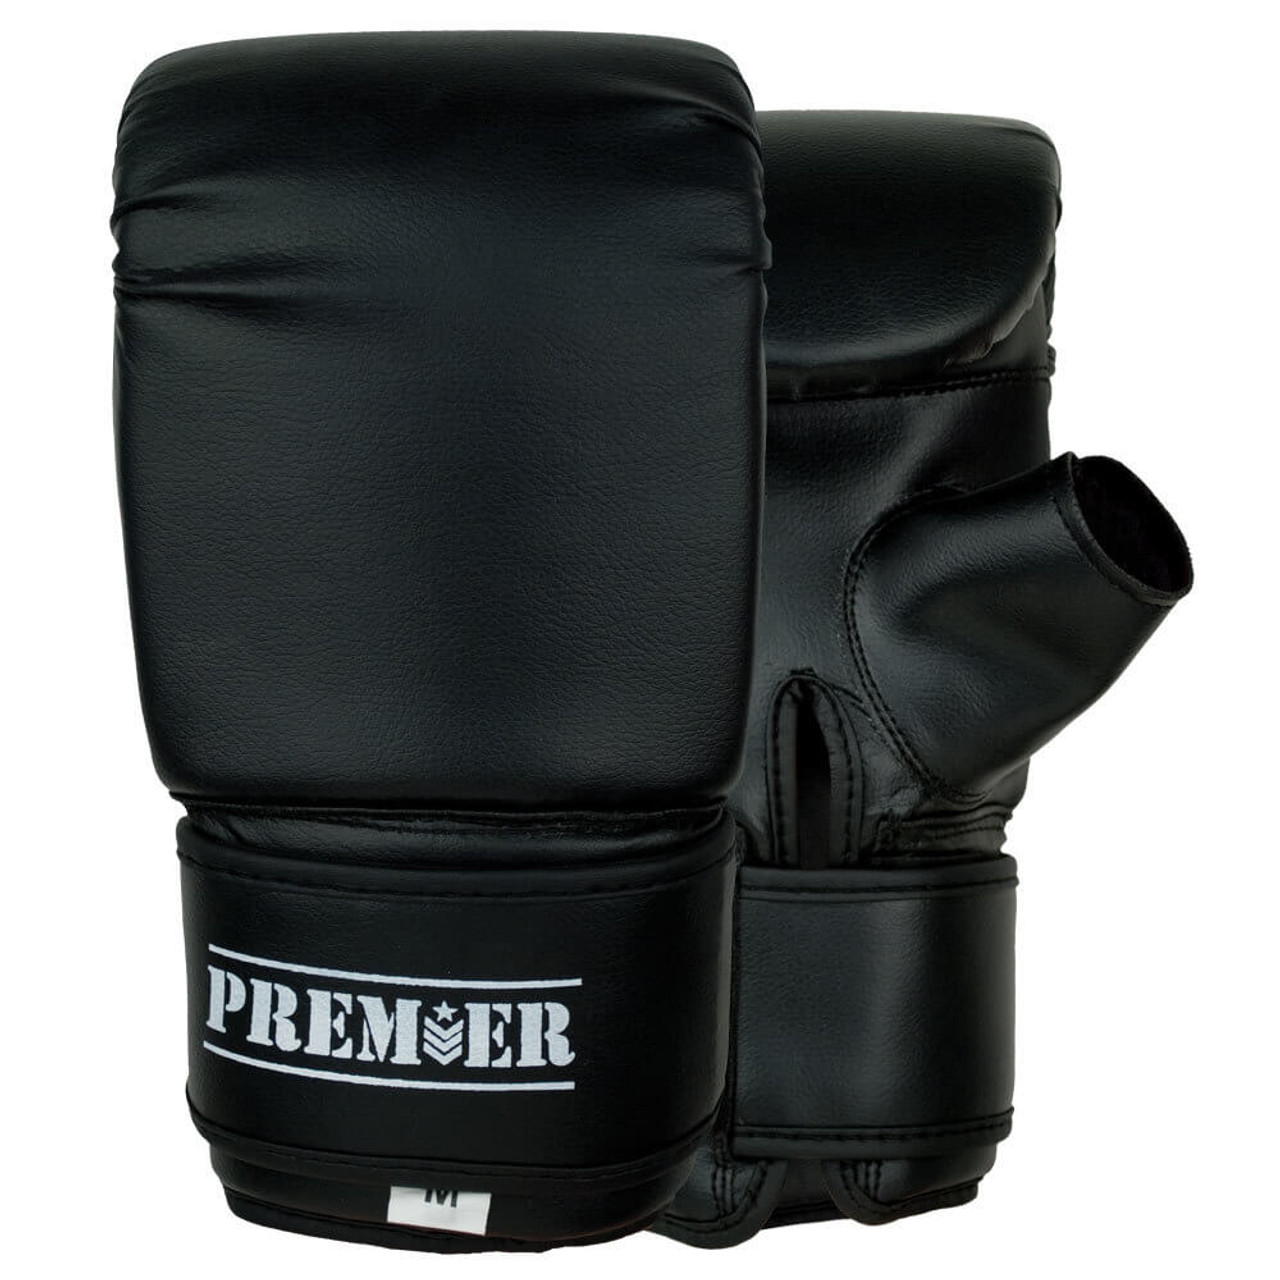 Deluxe Weight Lifting Gloves St12007: Premier Leather Bag Gloves, MMA Gloves, Leather Boxing Gloves